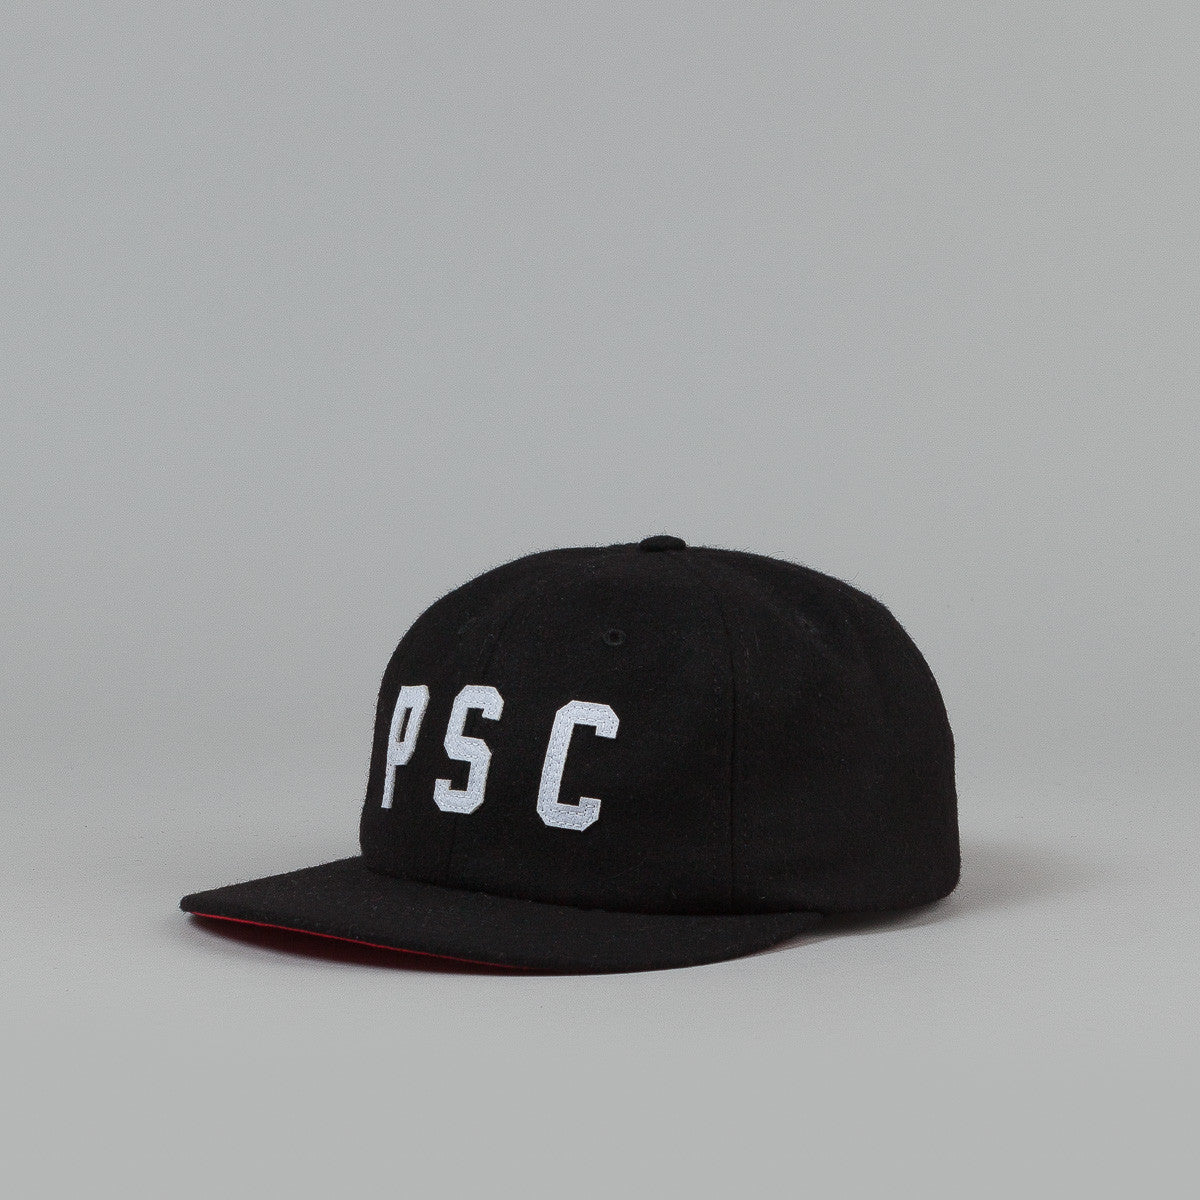 Polar PSC Ground Crew Wool Cap